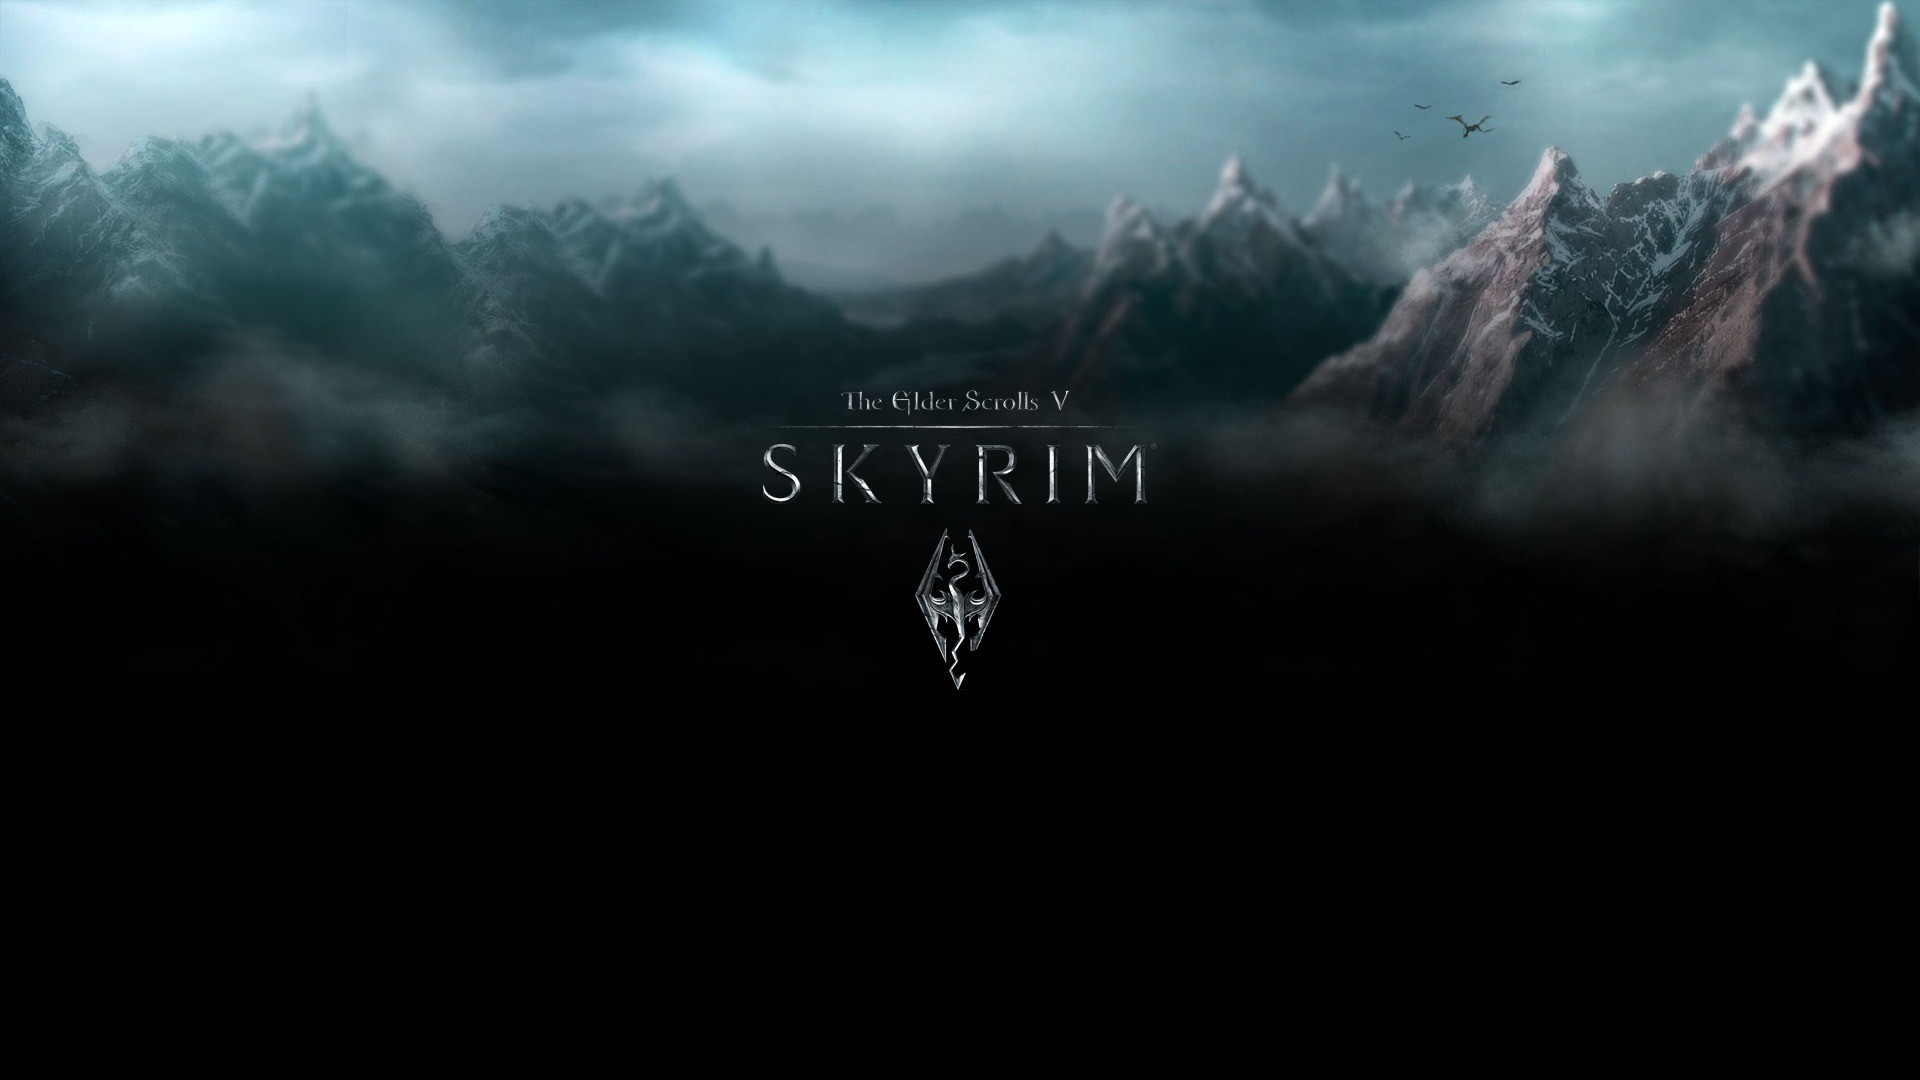 1920x1080 Wallpaper The Elder Scrolls V: Skyrim logo on leather » The Elder Scrolls:  Fan site